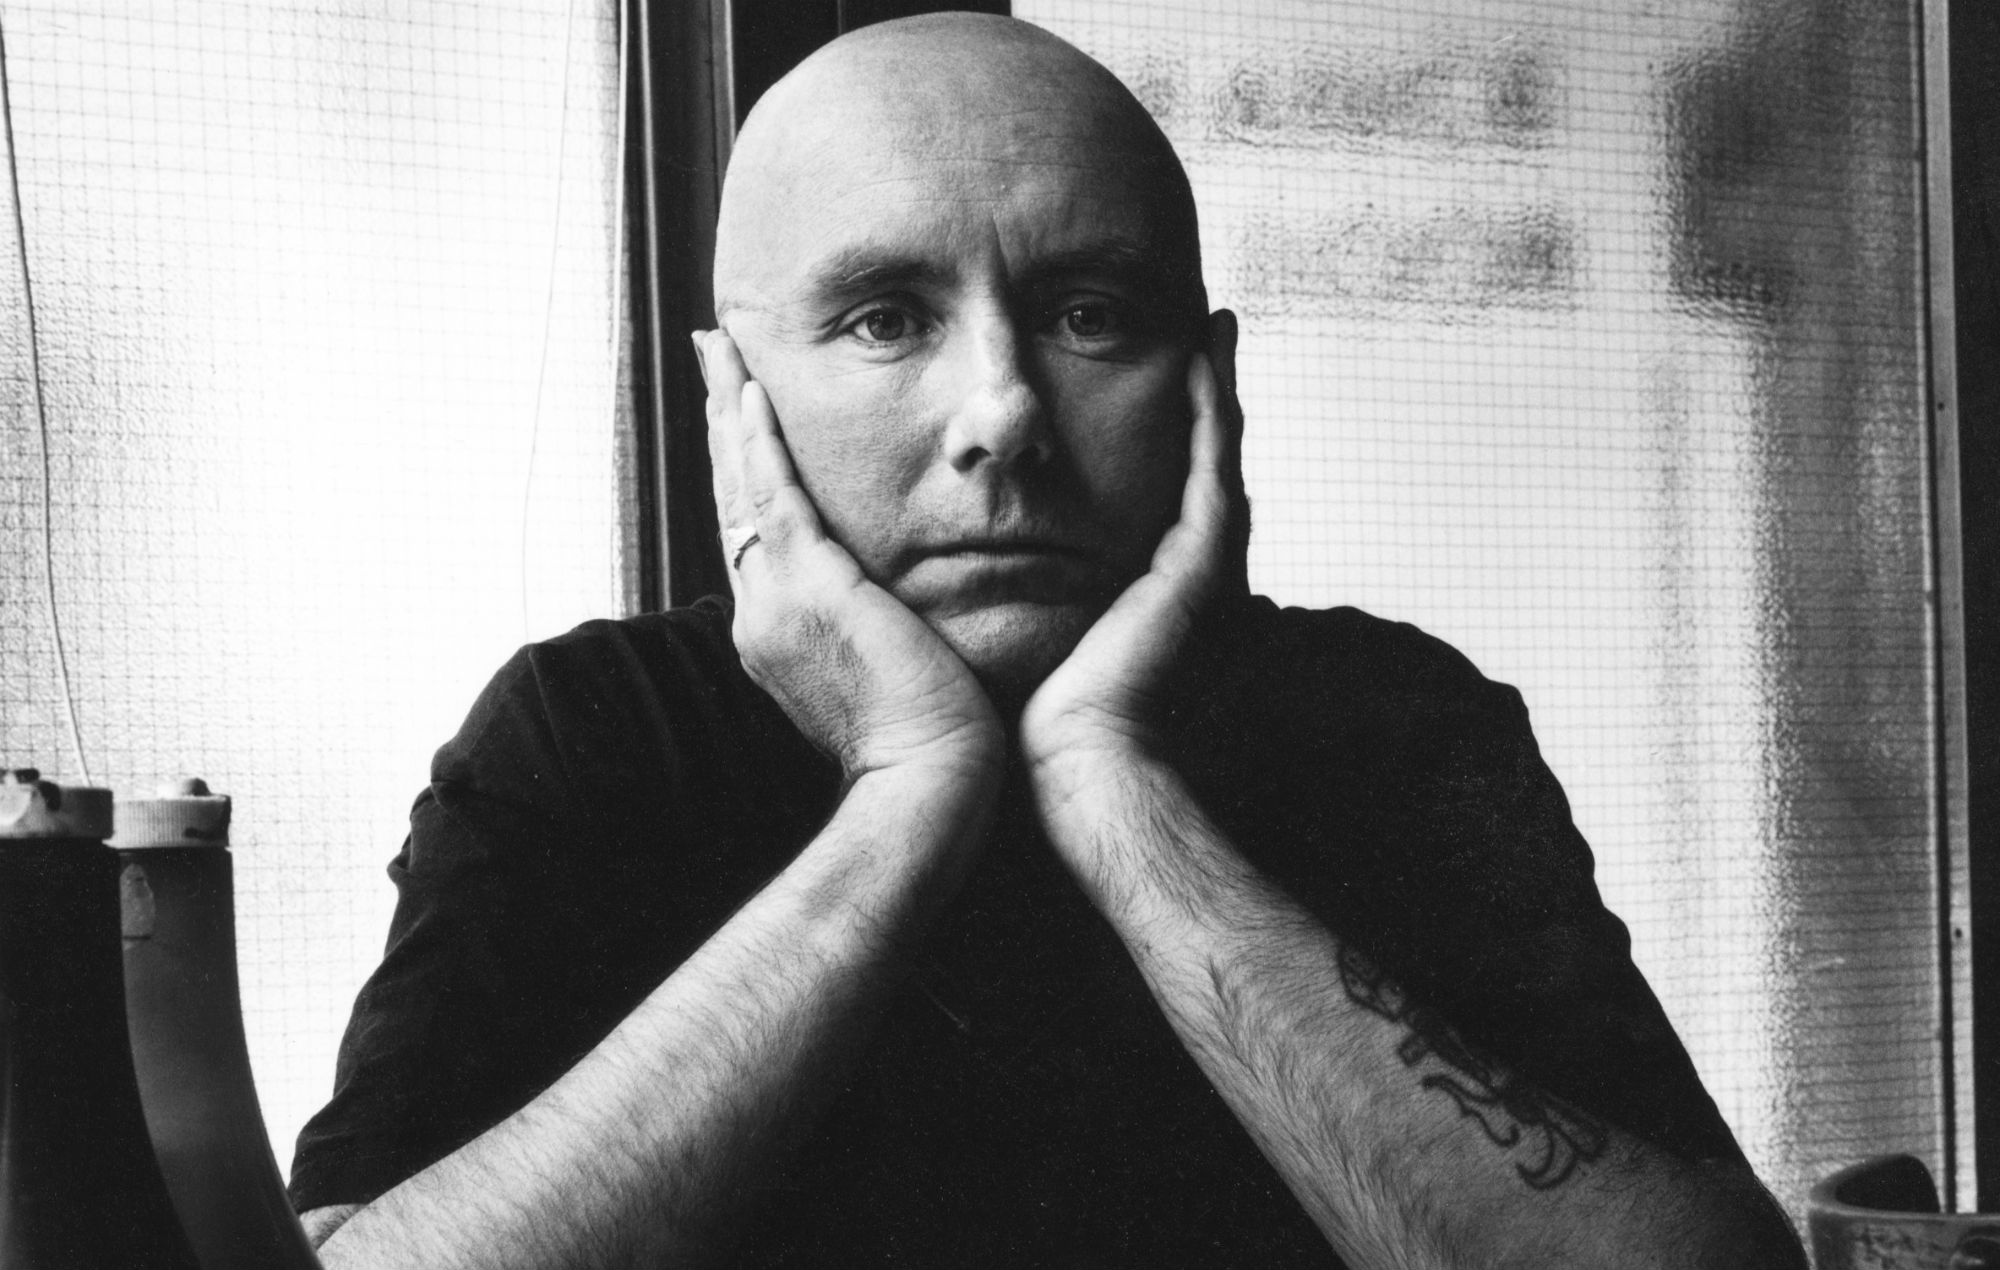 Trainspotting' author Irvine Welsh is releasing an acid house ...